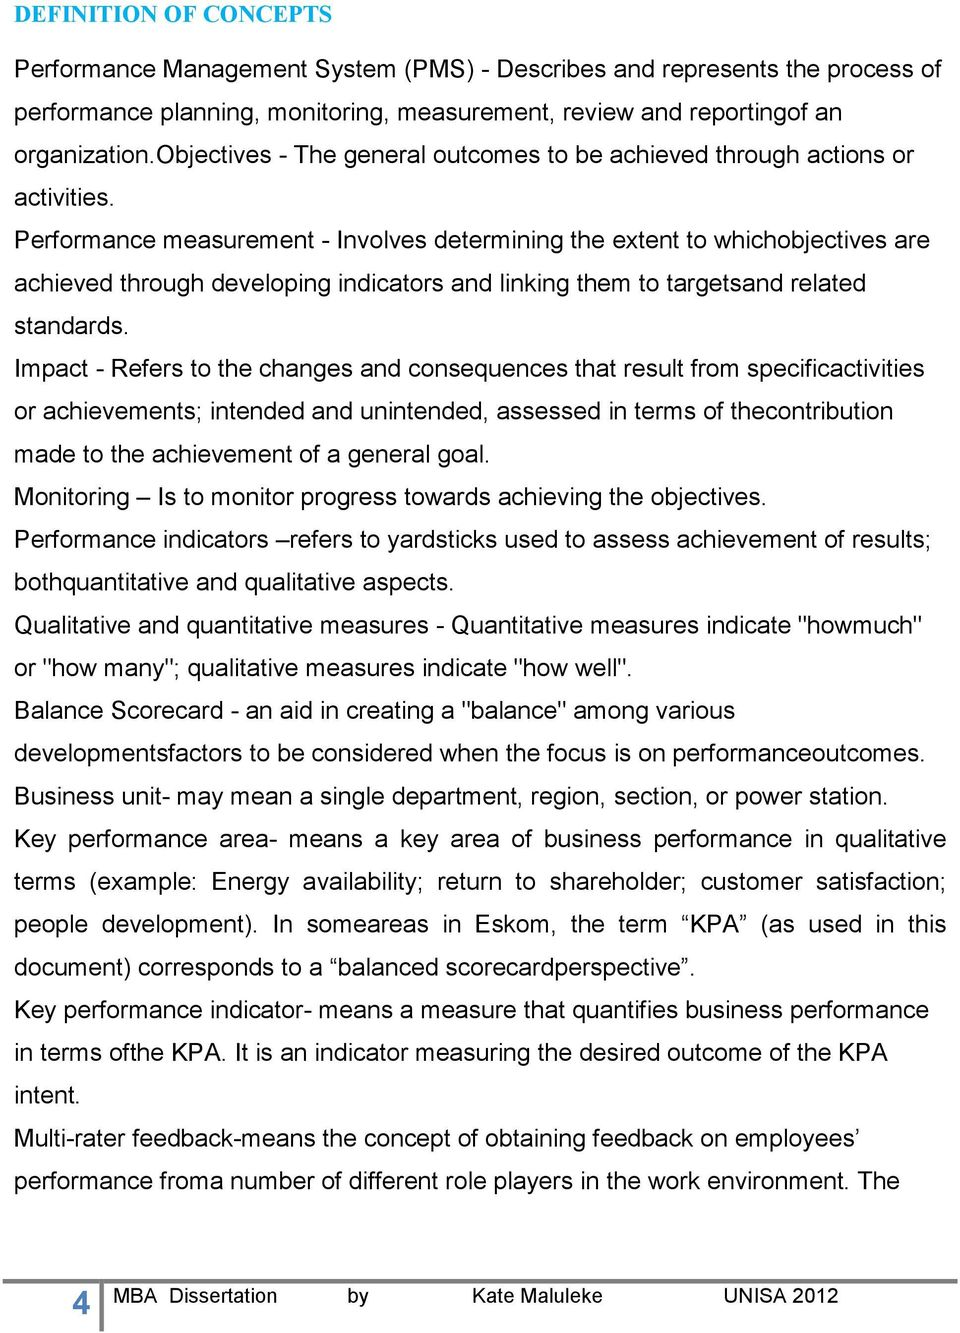 Performance measurement - Involves determining the extent to whichobjectives are achieved through developing indicators and linking them to targetsand related standards.